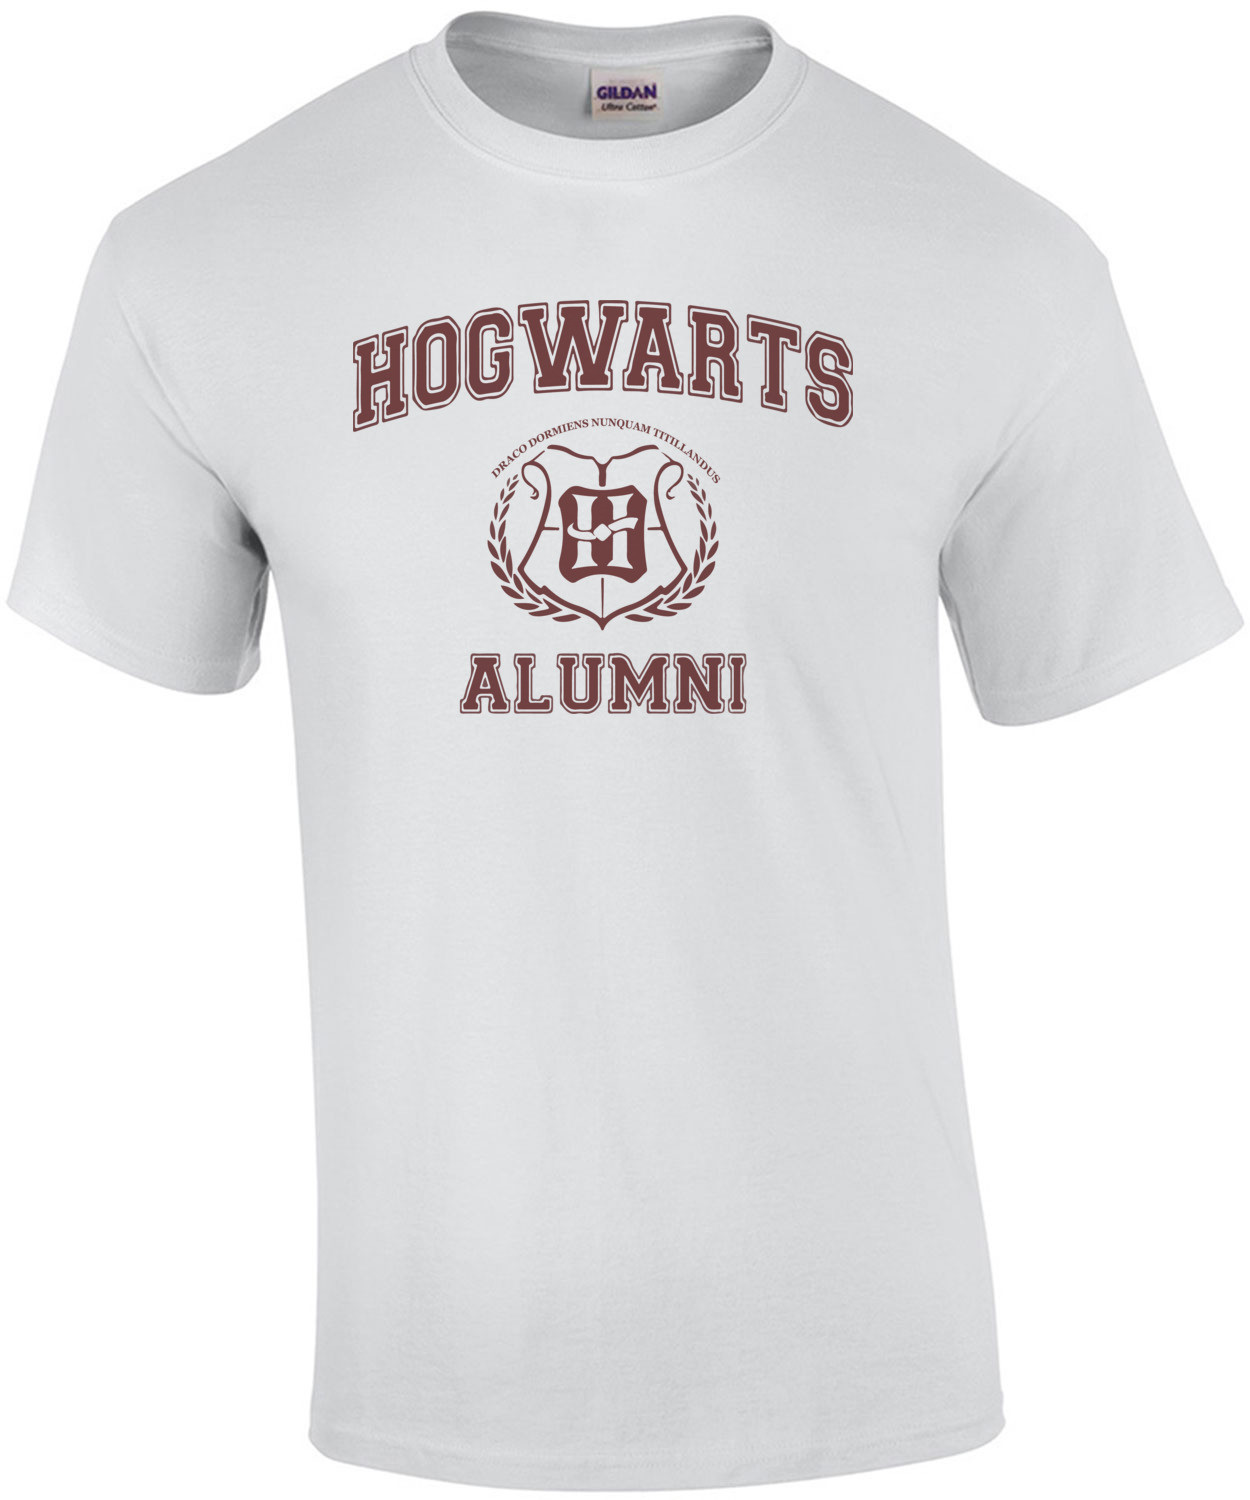 Hogwarts Alumni - Harry Potter